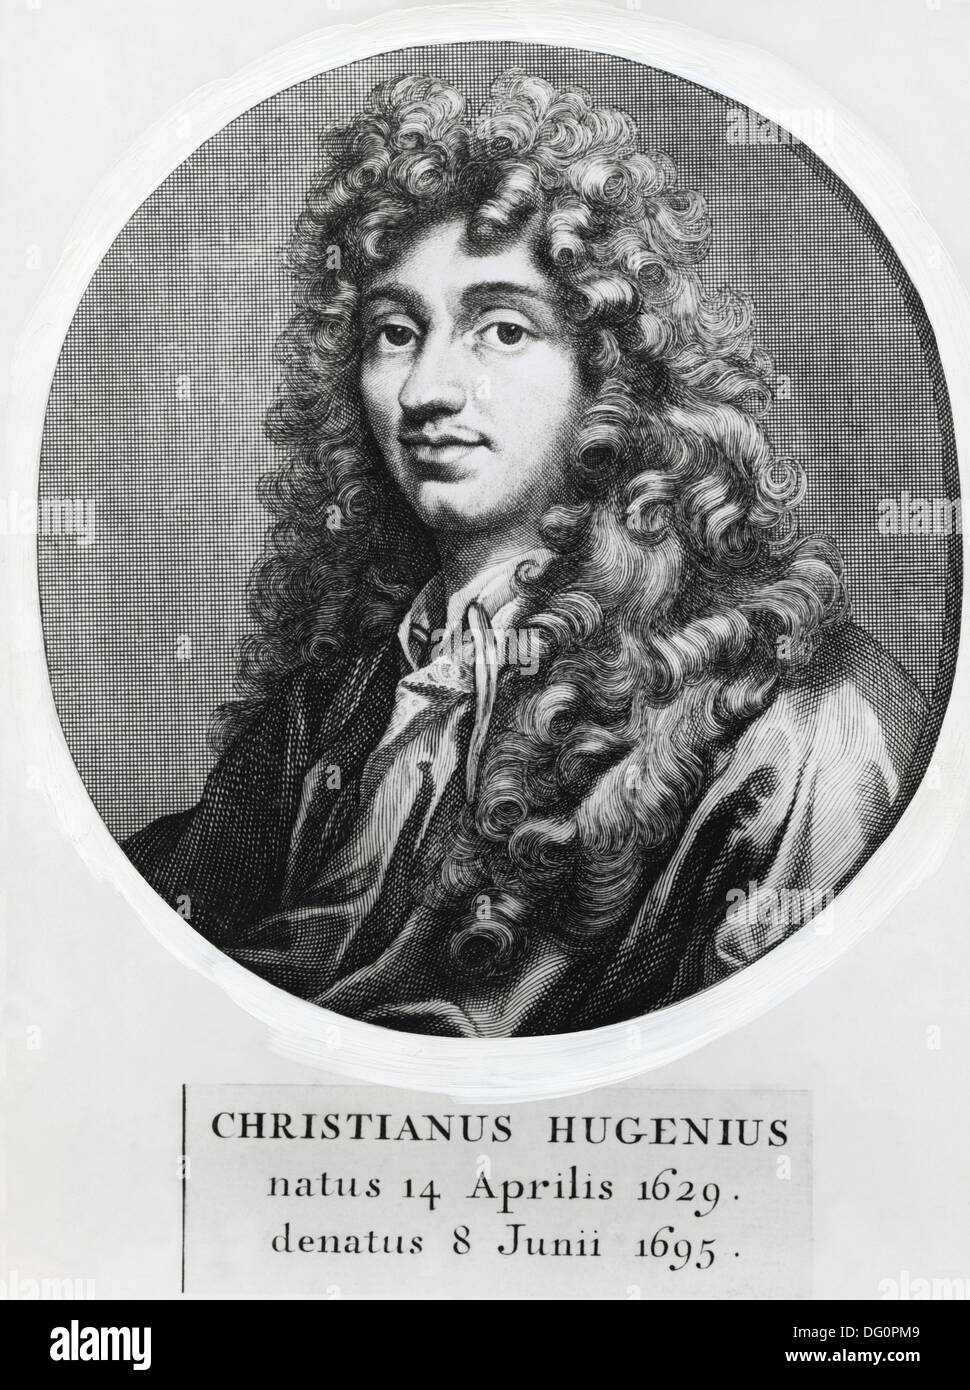 Christiaan Huygens, dutch mathematician, astronomer and physicist (1629-1695) - Stock Image